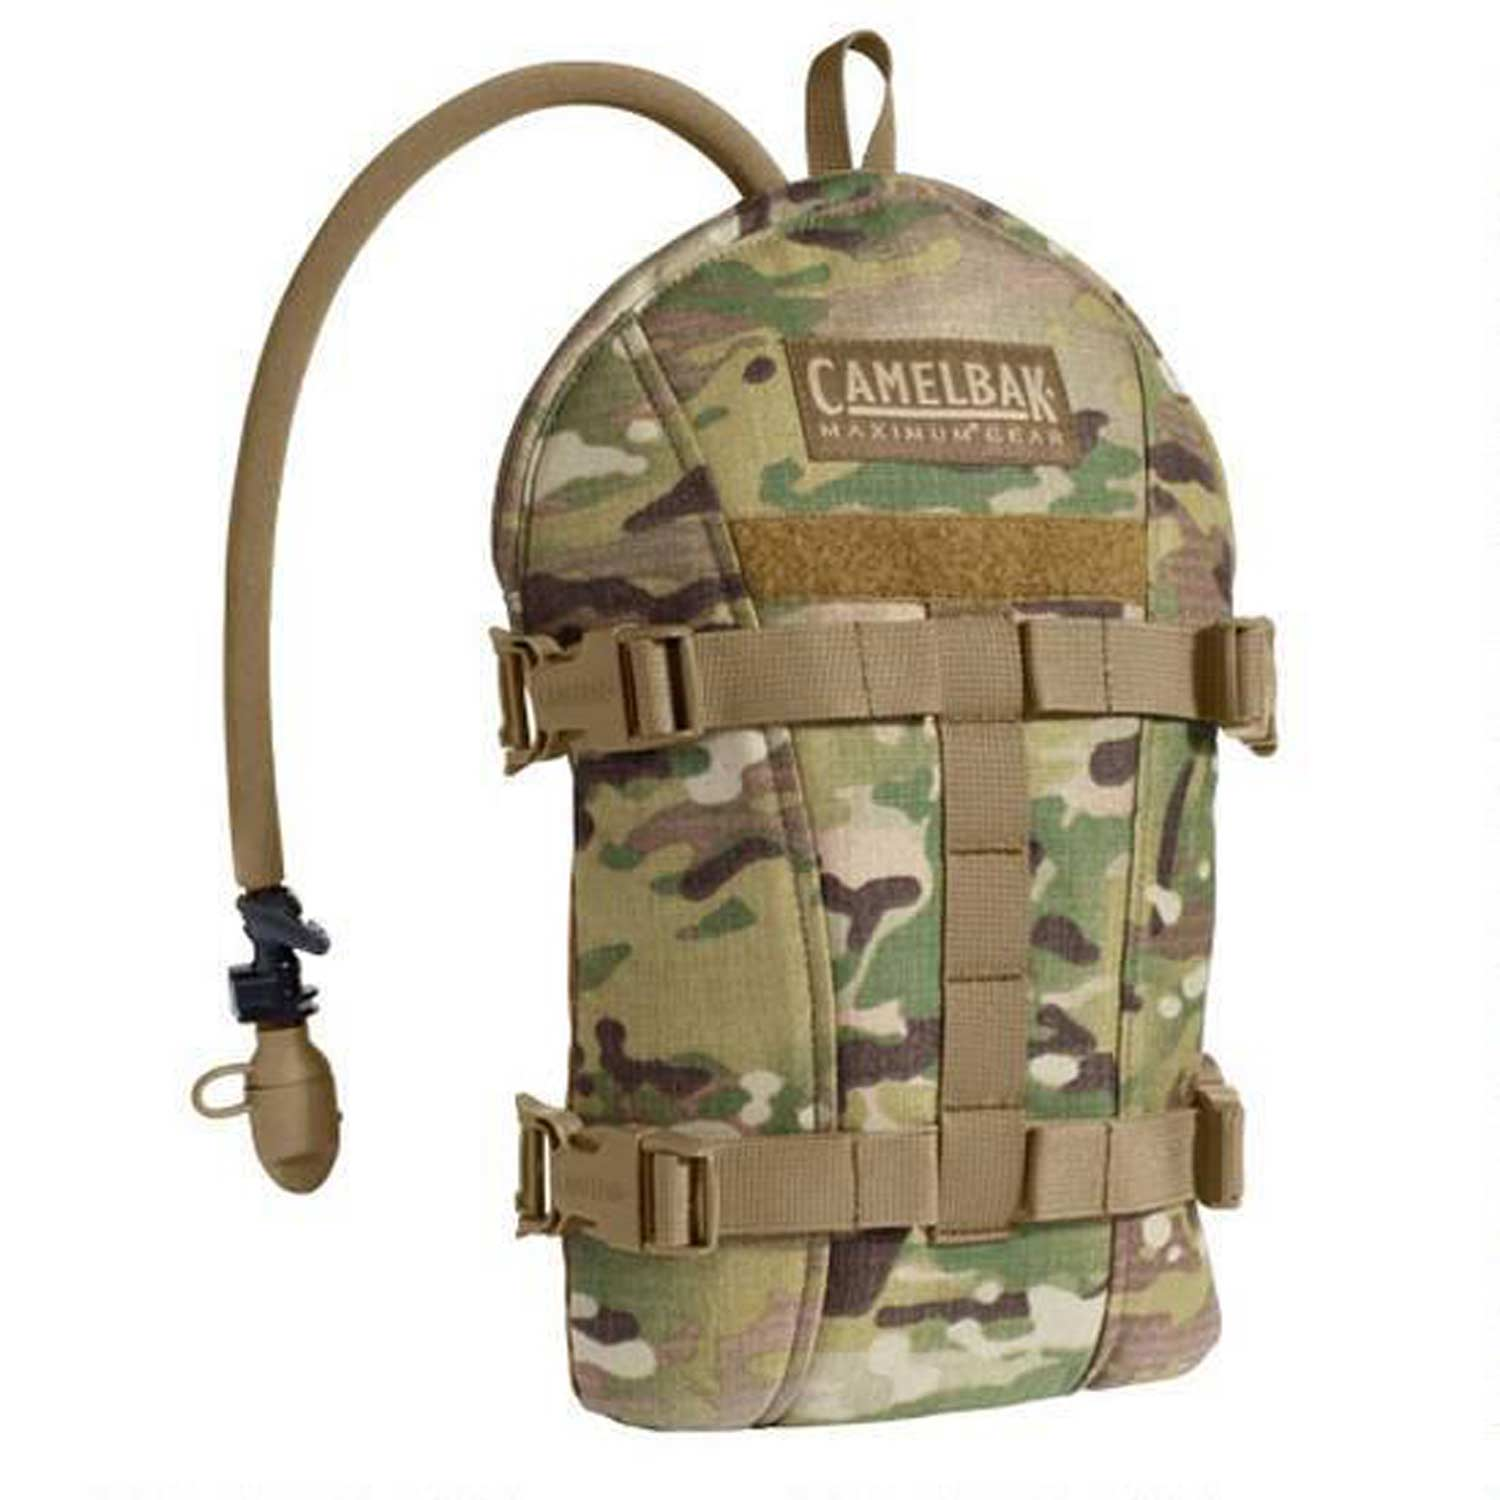 CamelBak ArmorBak 3.0L Hydration Pack with Mil Spec Antidote